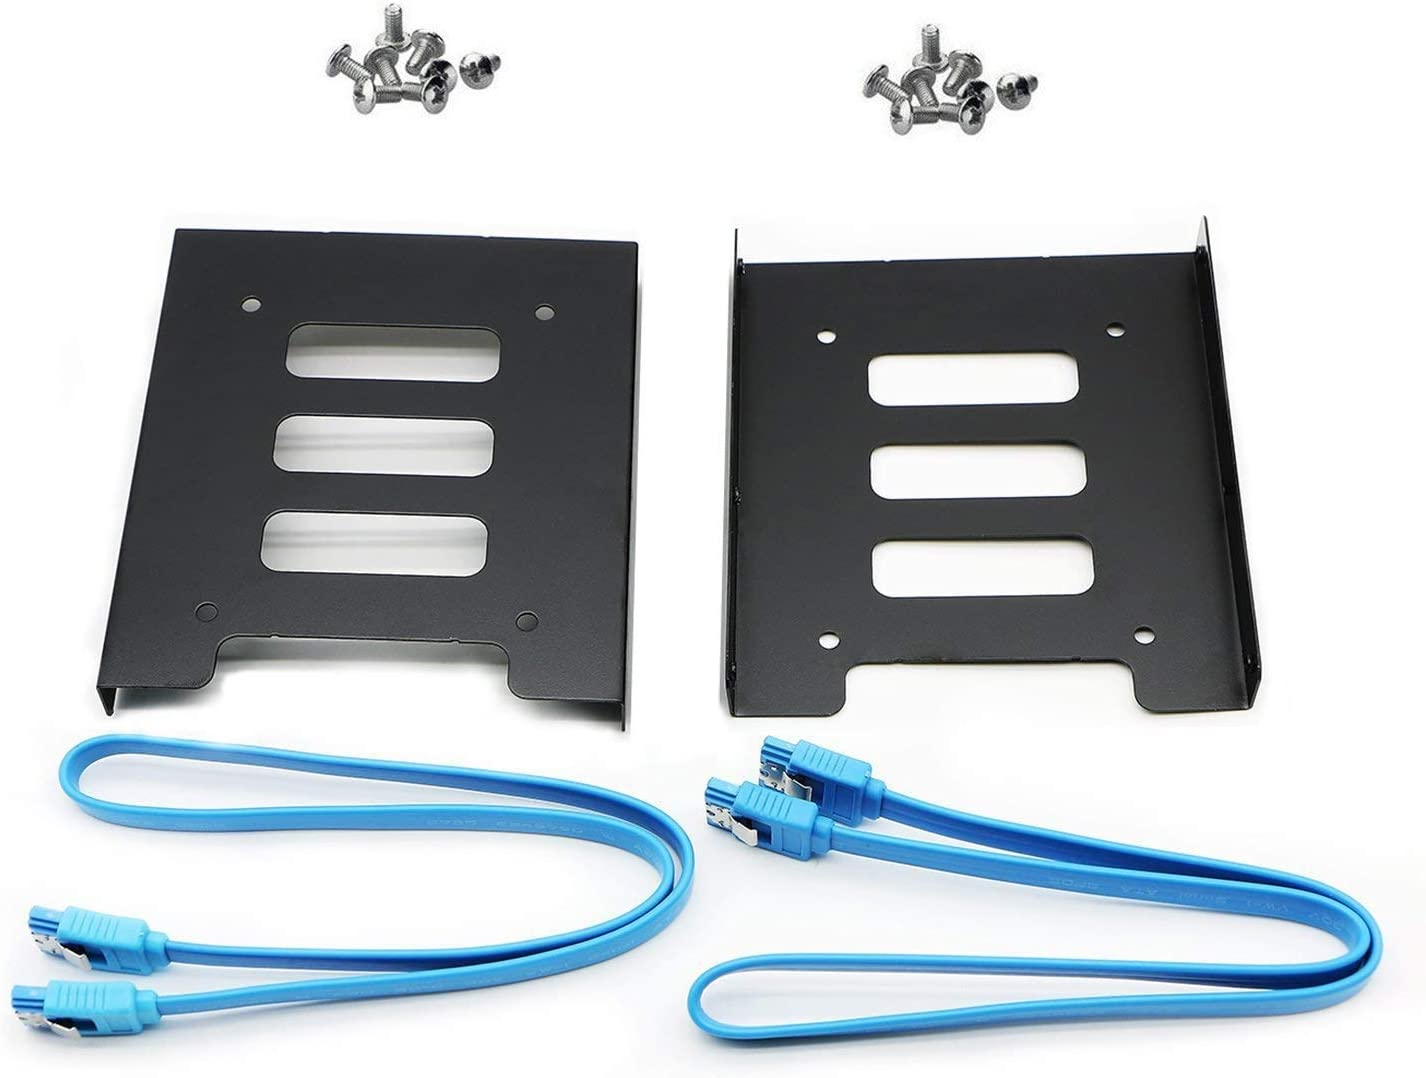 "Pasow 2 Pack 2.5"" to 3.5"" SSD HDD Hard Disk Drive Bays Holder Metal Mounting Bracket Adapter for PC (Bracket + Blue Sata III Cables)"